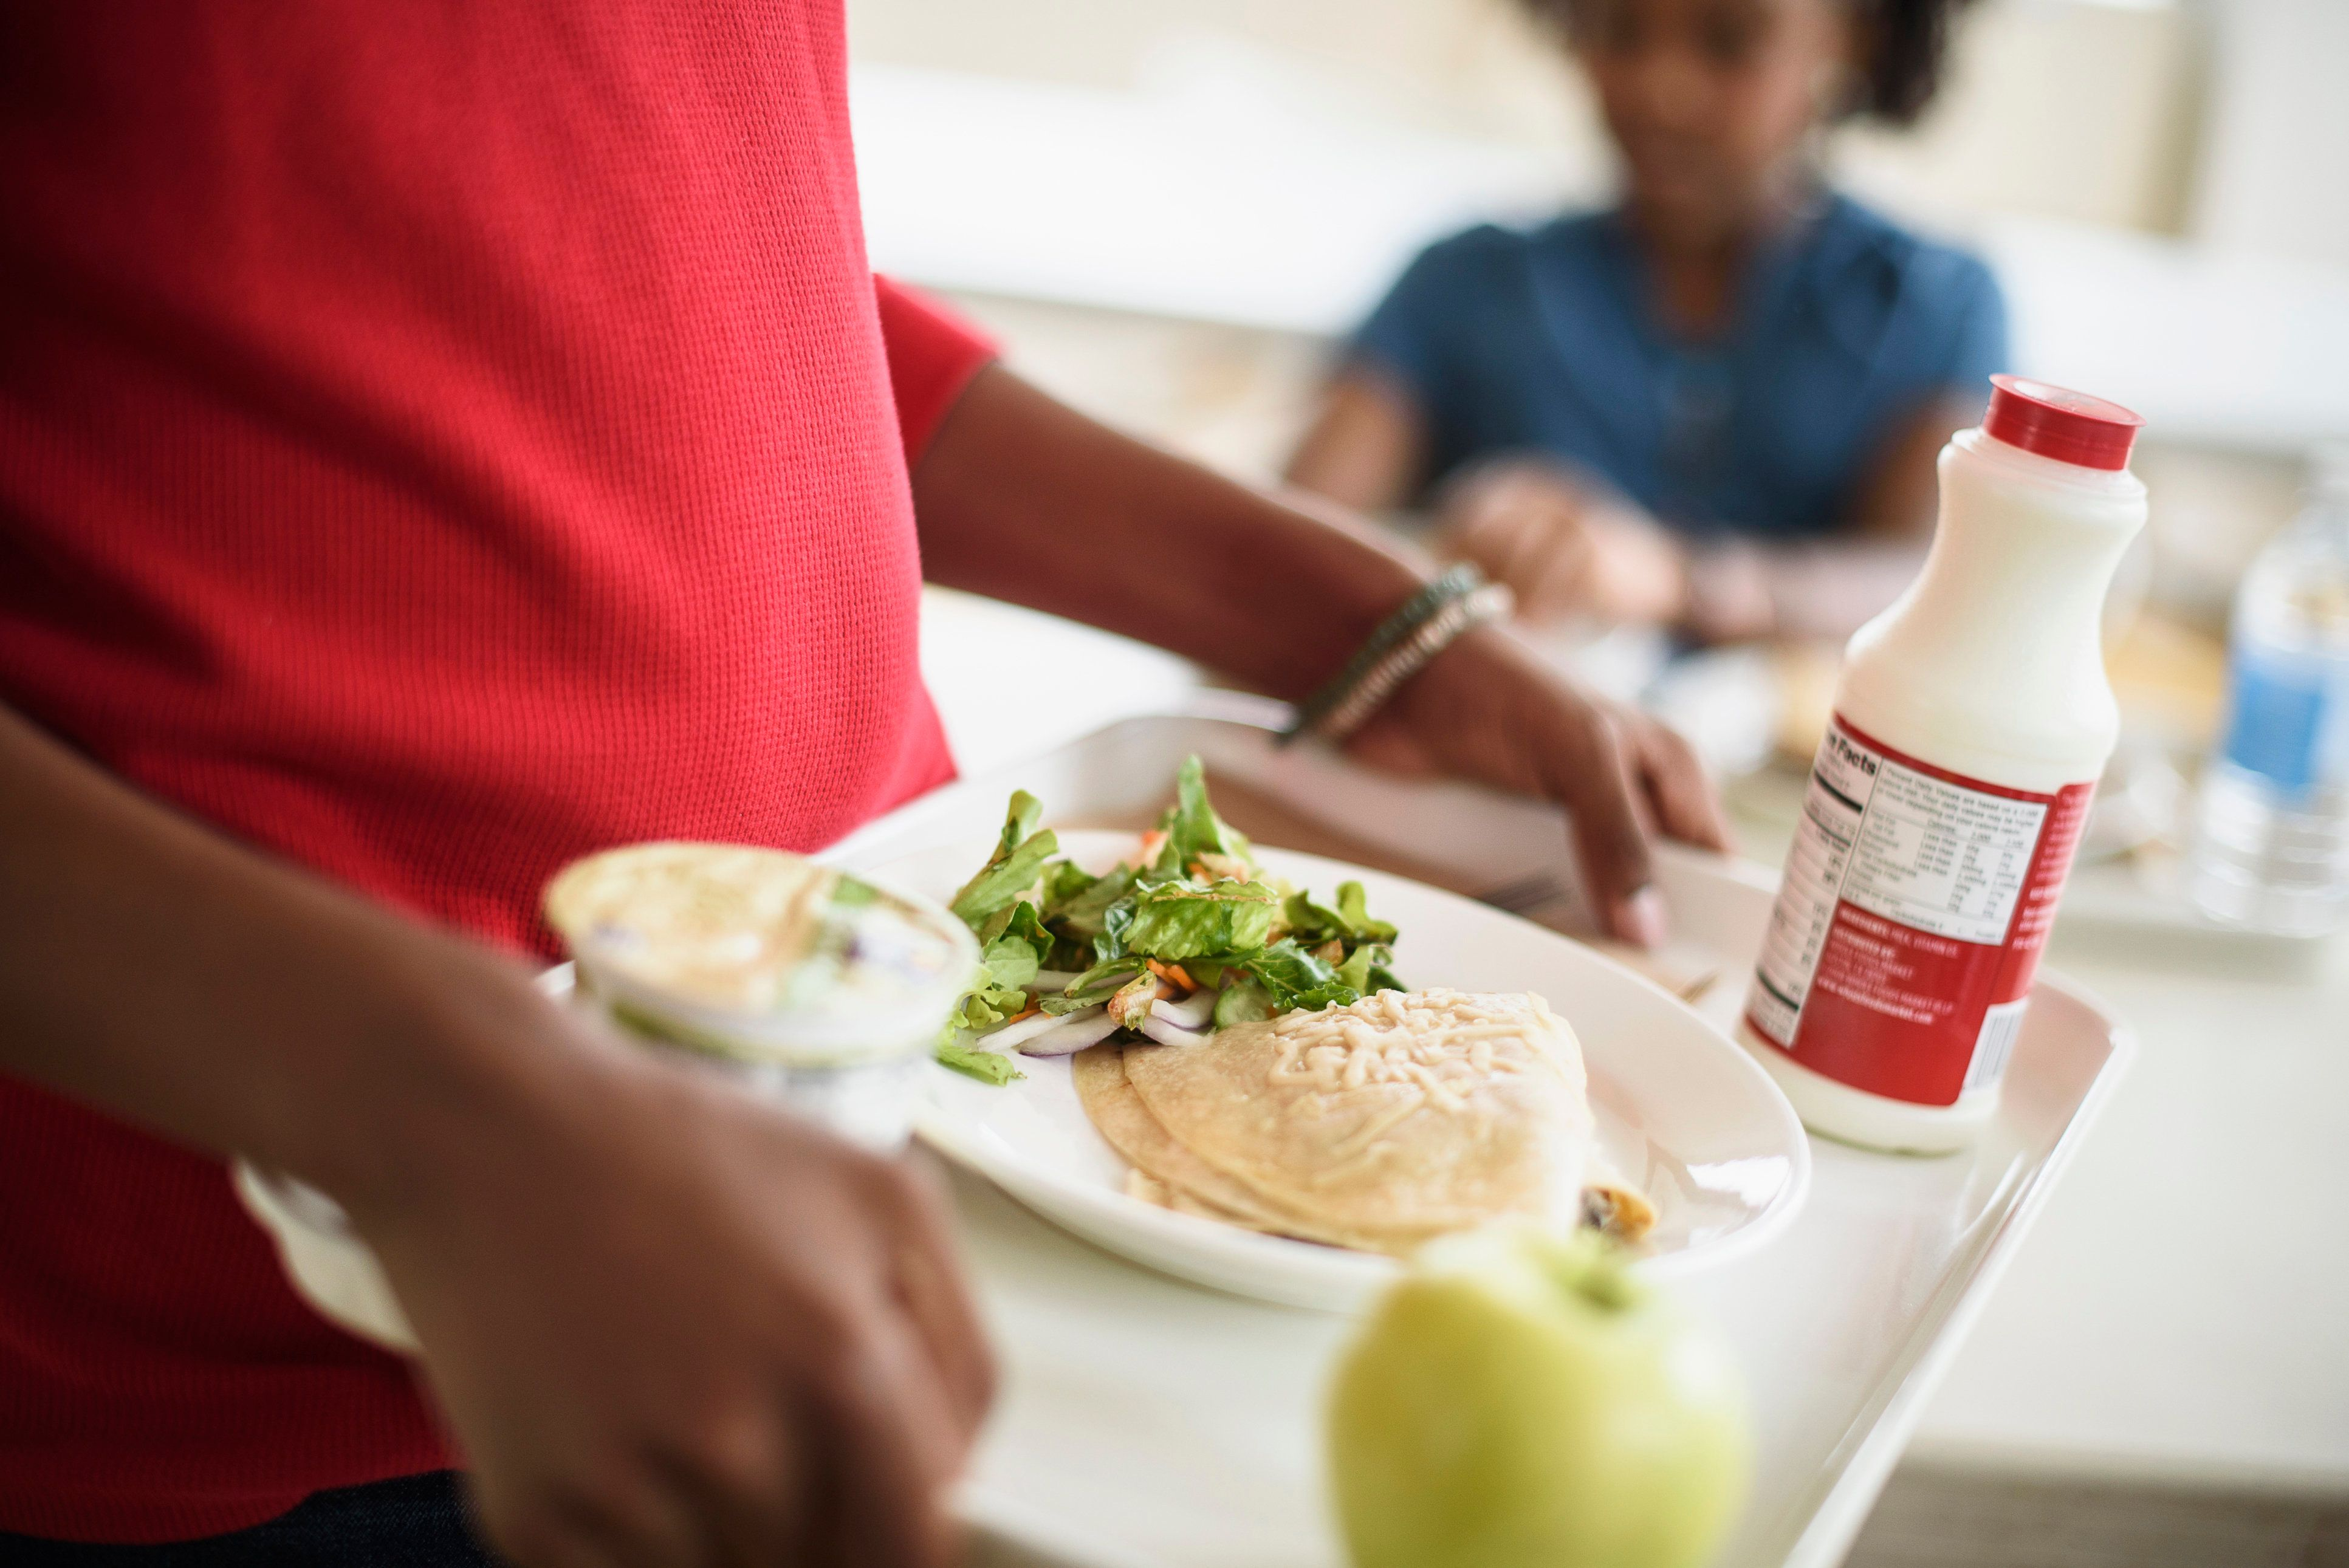 """Two dads are helping erase the school lunch debt in Washington state with a <a href=""""https://www.gofundme.com/erase-washington-school-lunch-debt"""" target=""""_blank"""">GoFundMe campaign</a>."""